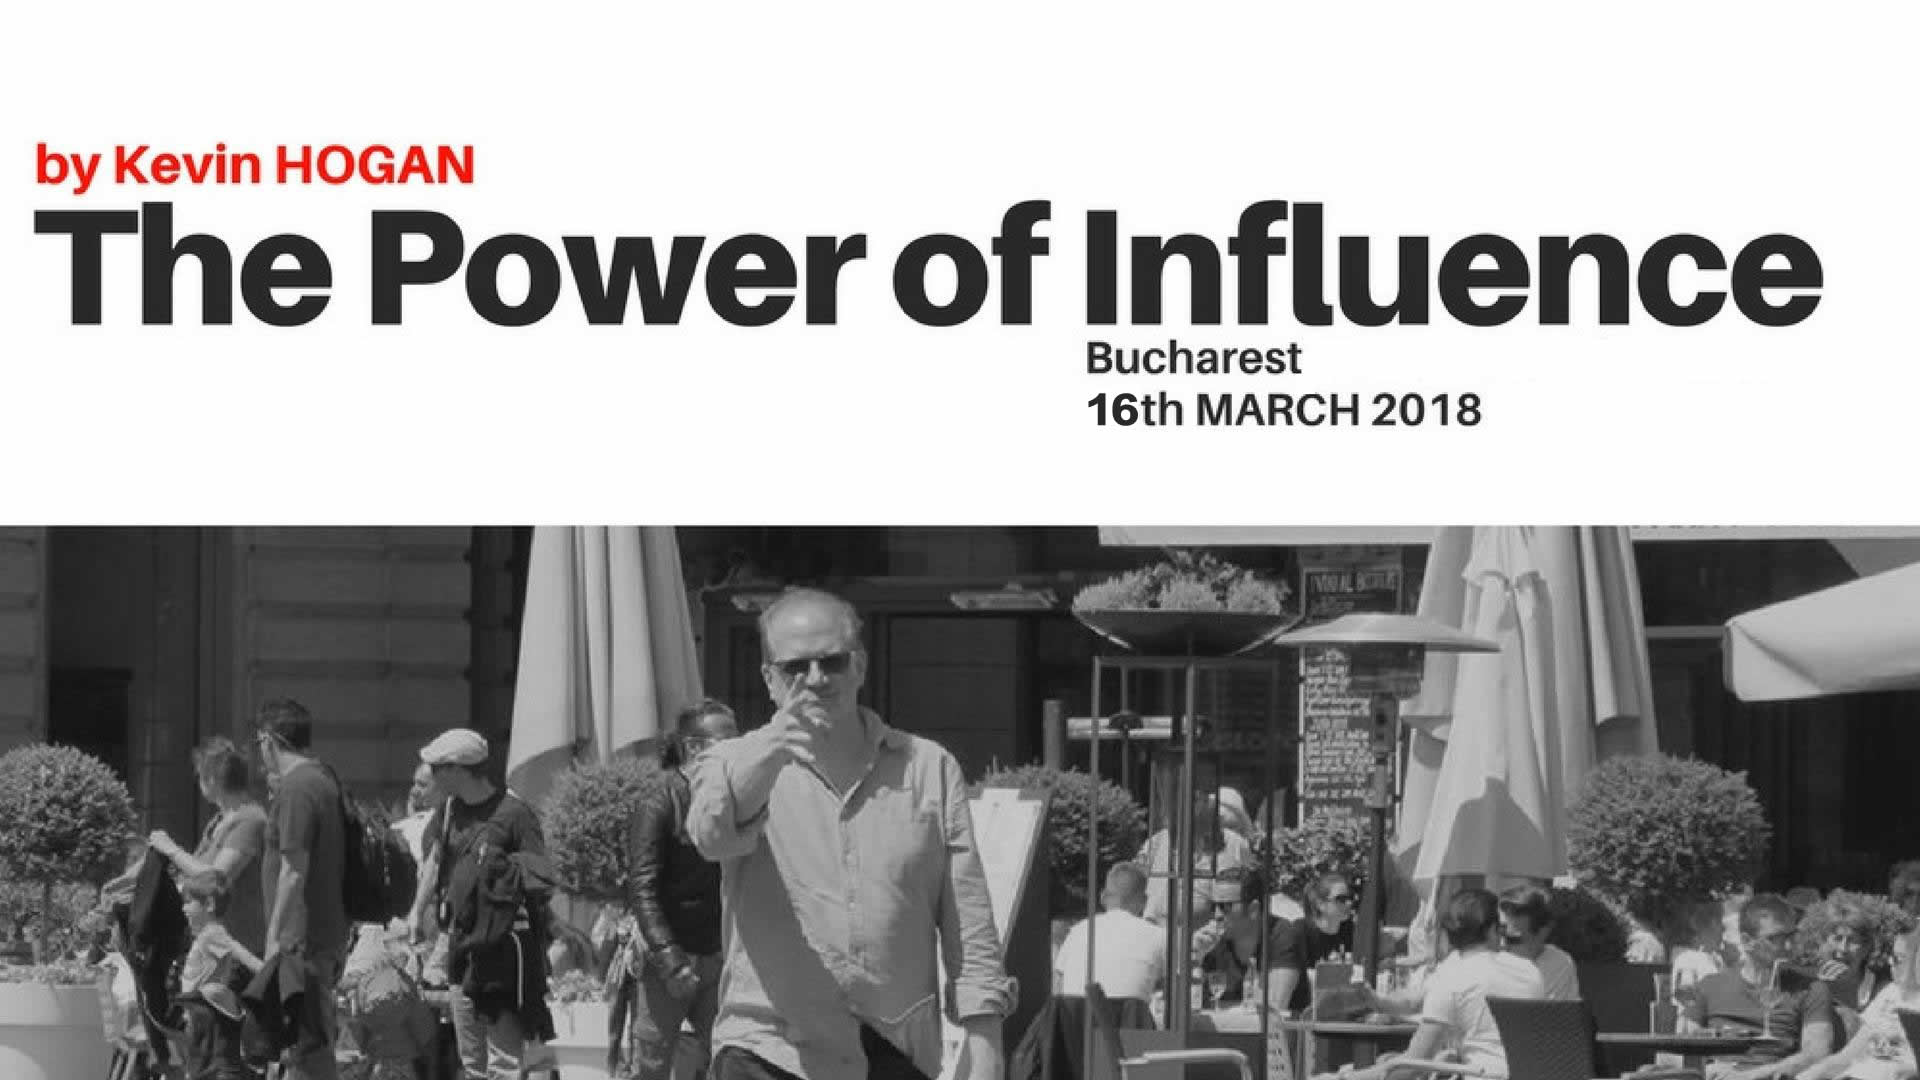 The Power of Influence - Dr. Kevin Hogan - Bucharest 16 March 2018